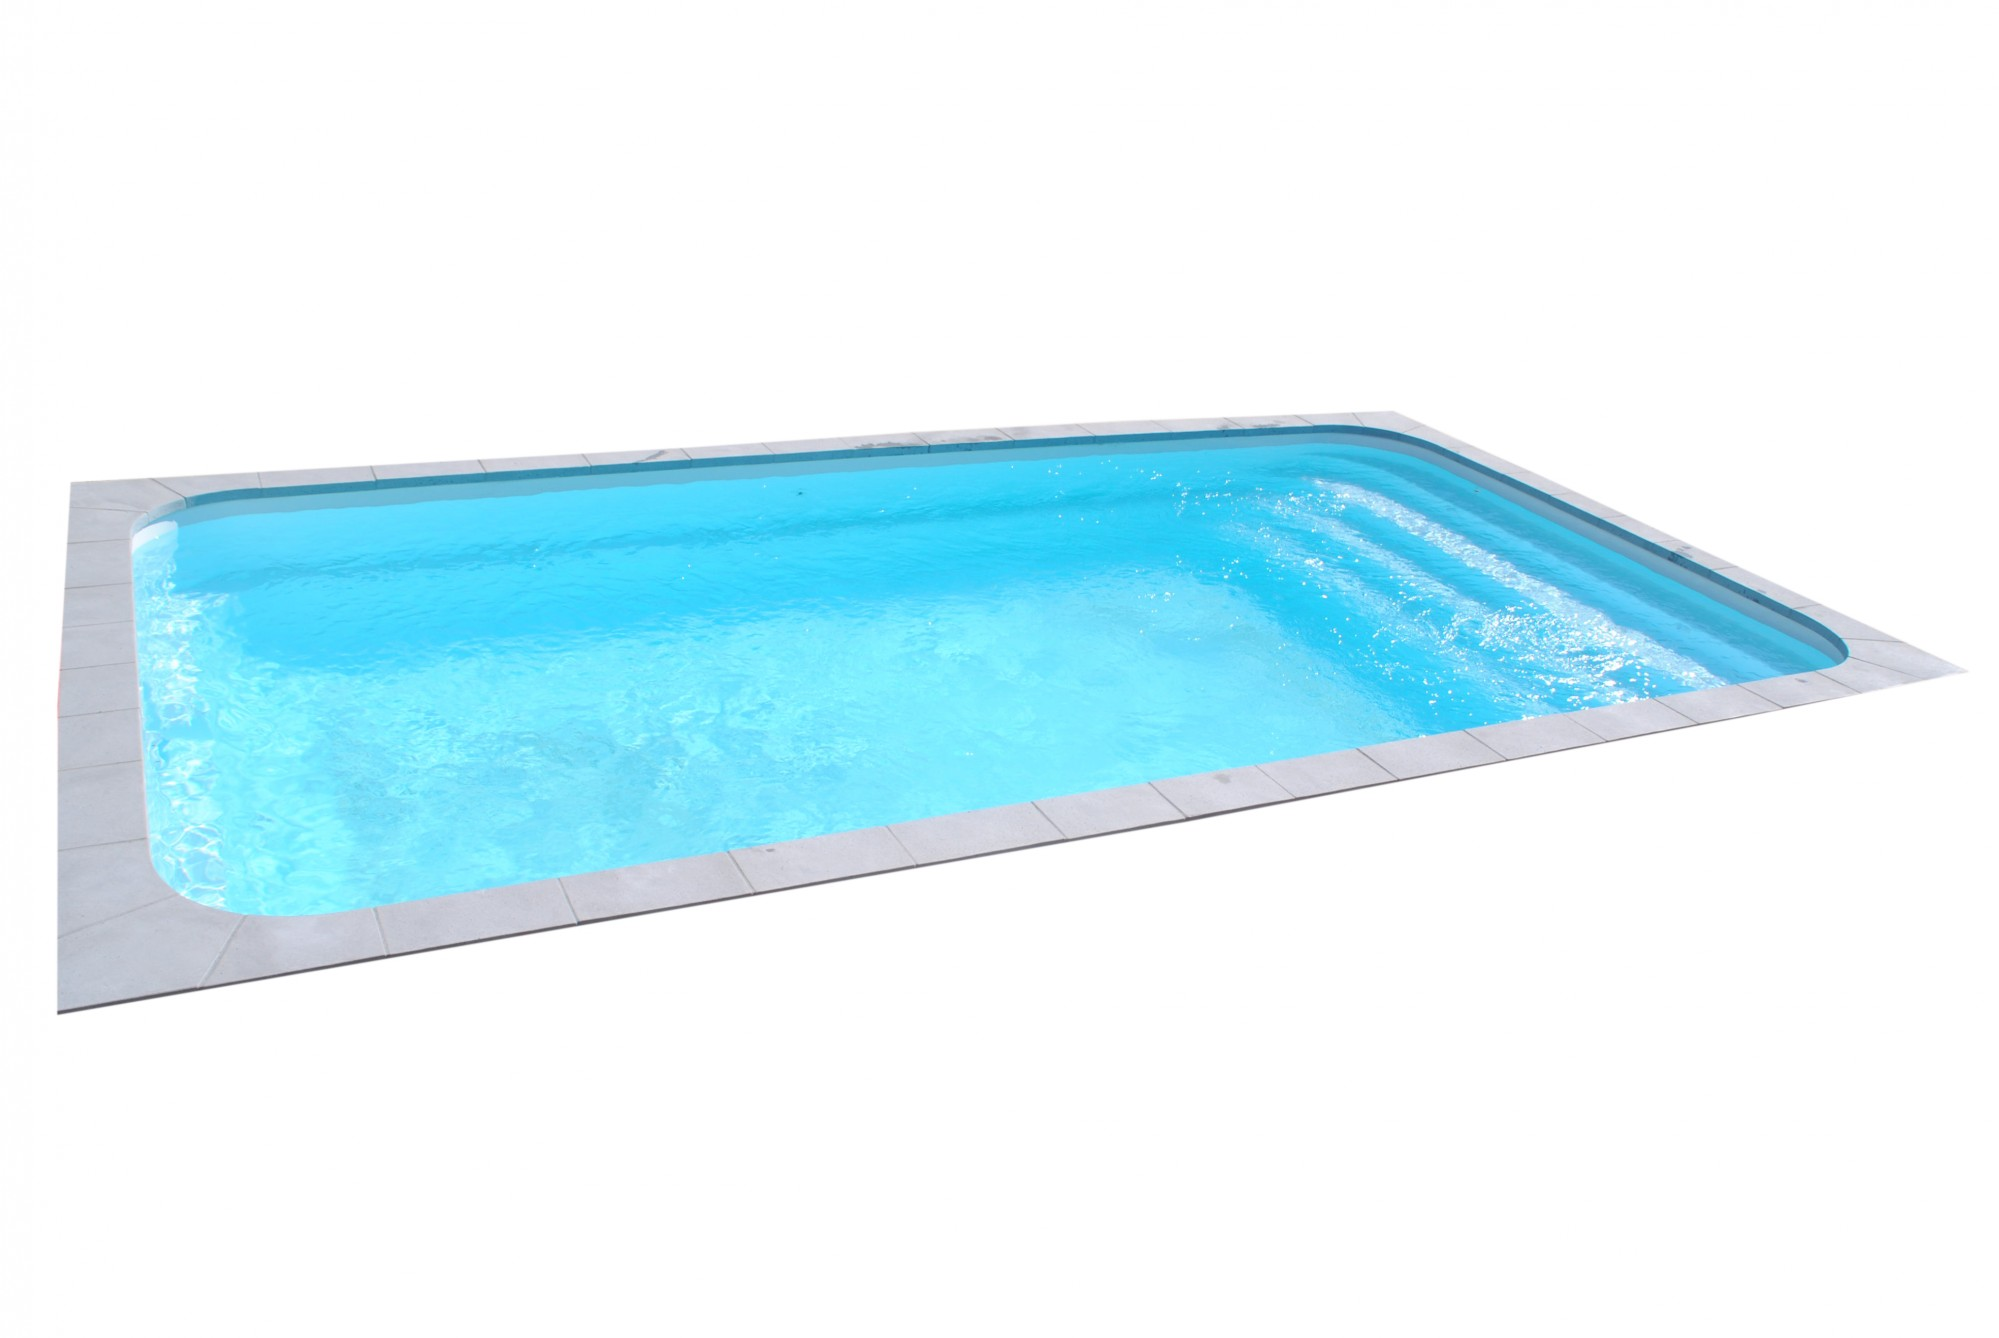 Coque Piscine Polyester Of Prix D 39 Une Piscine Coque Polyester 8x4 Pose Comprise